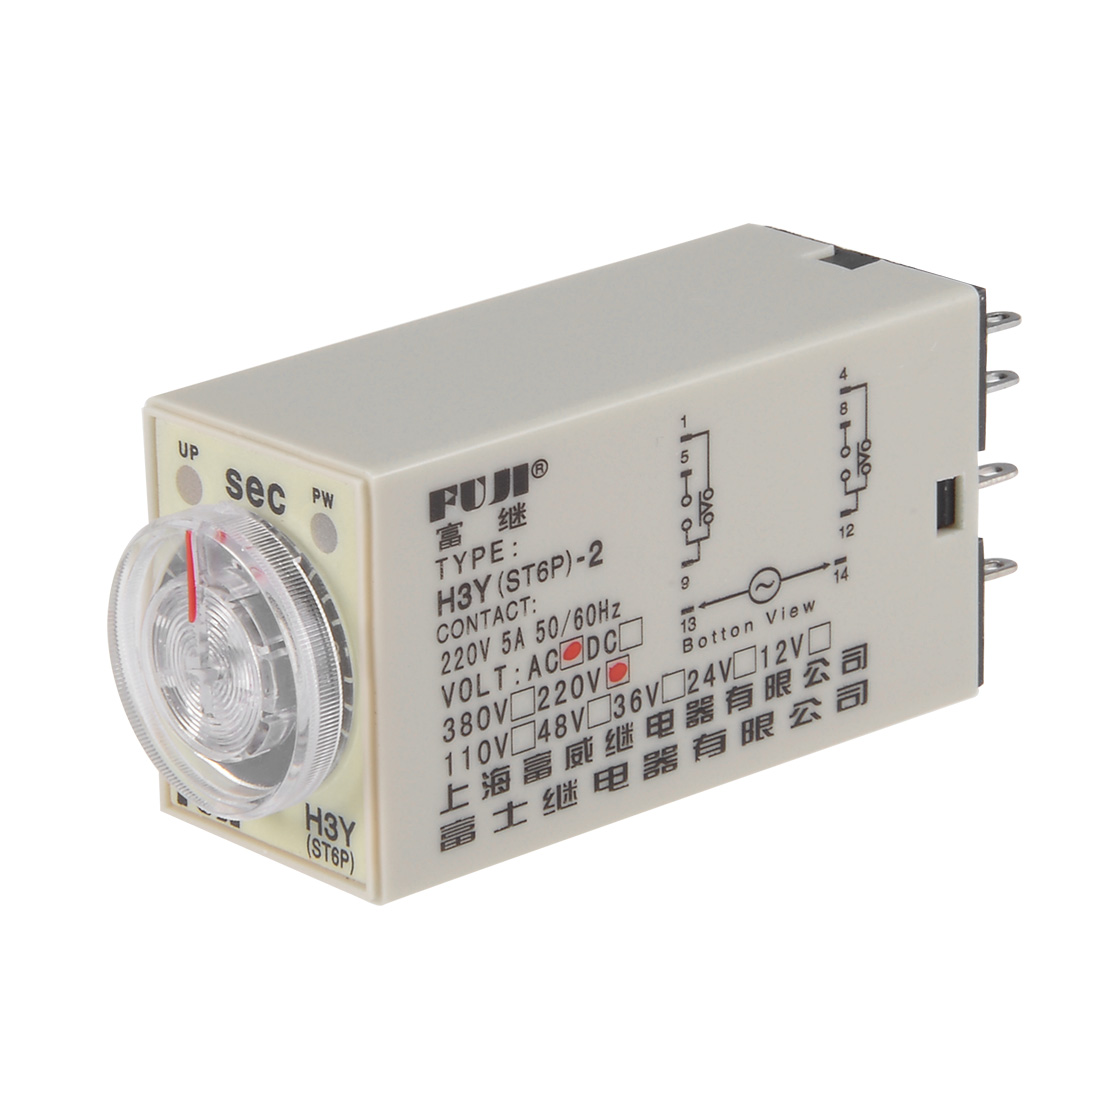 220VAC 10S 8 Terminals Range Adjustable Delay Timer Time Relay H3Y(ST6P)-2